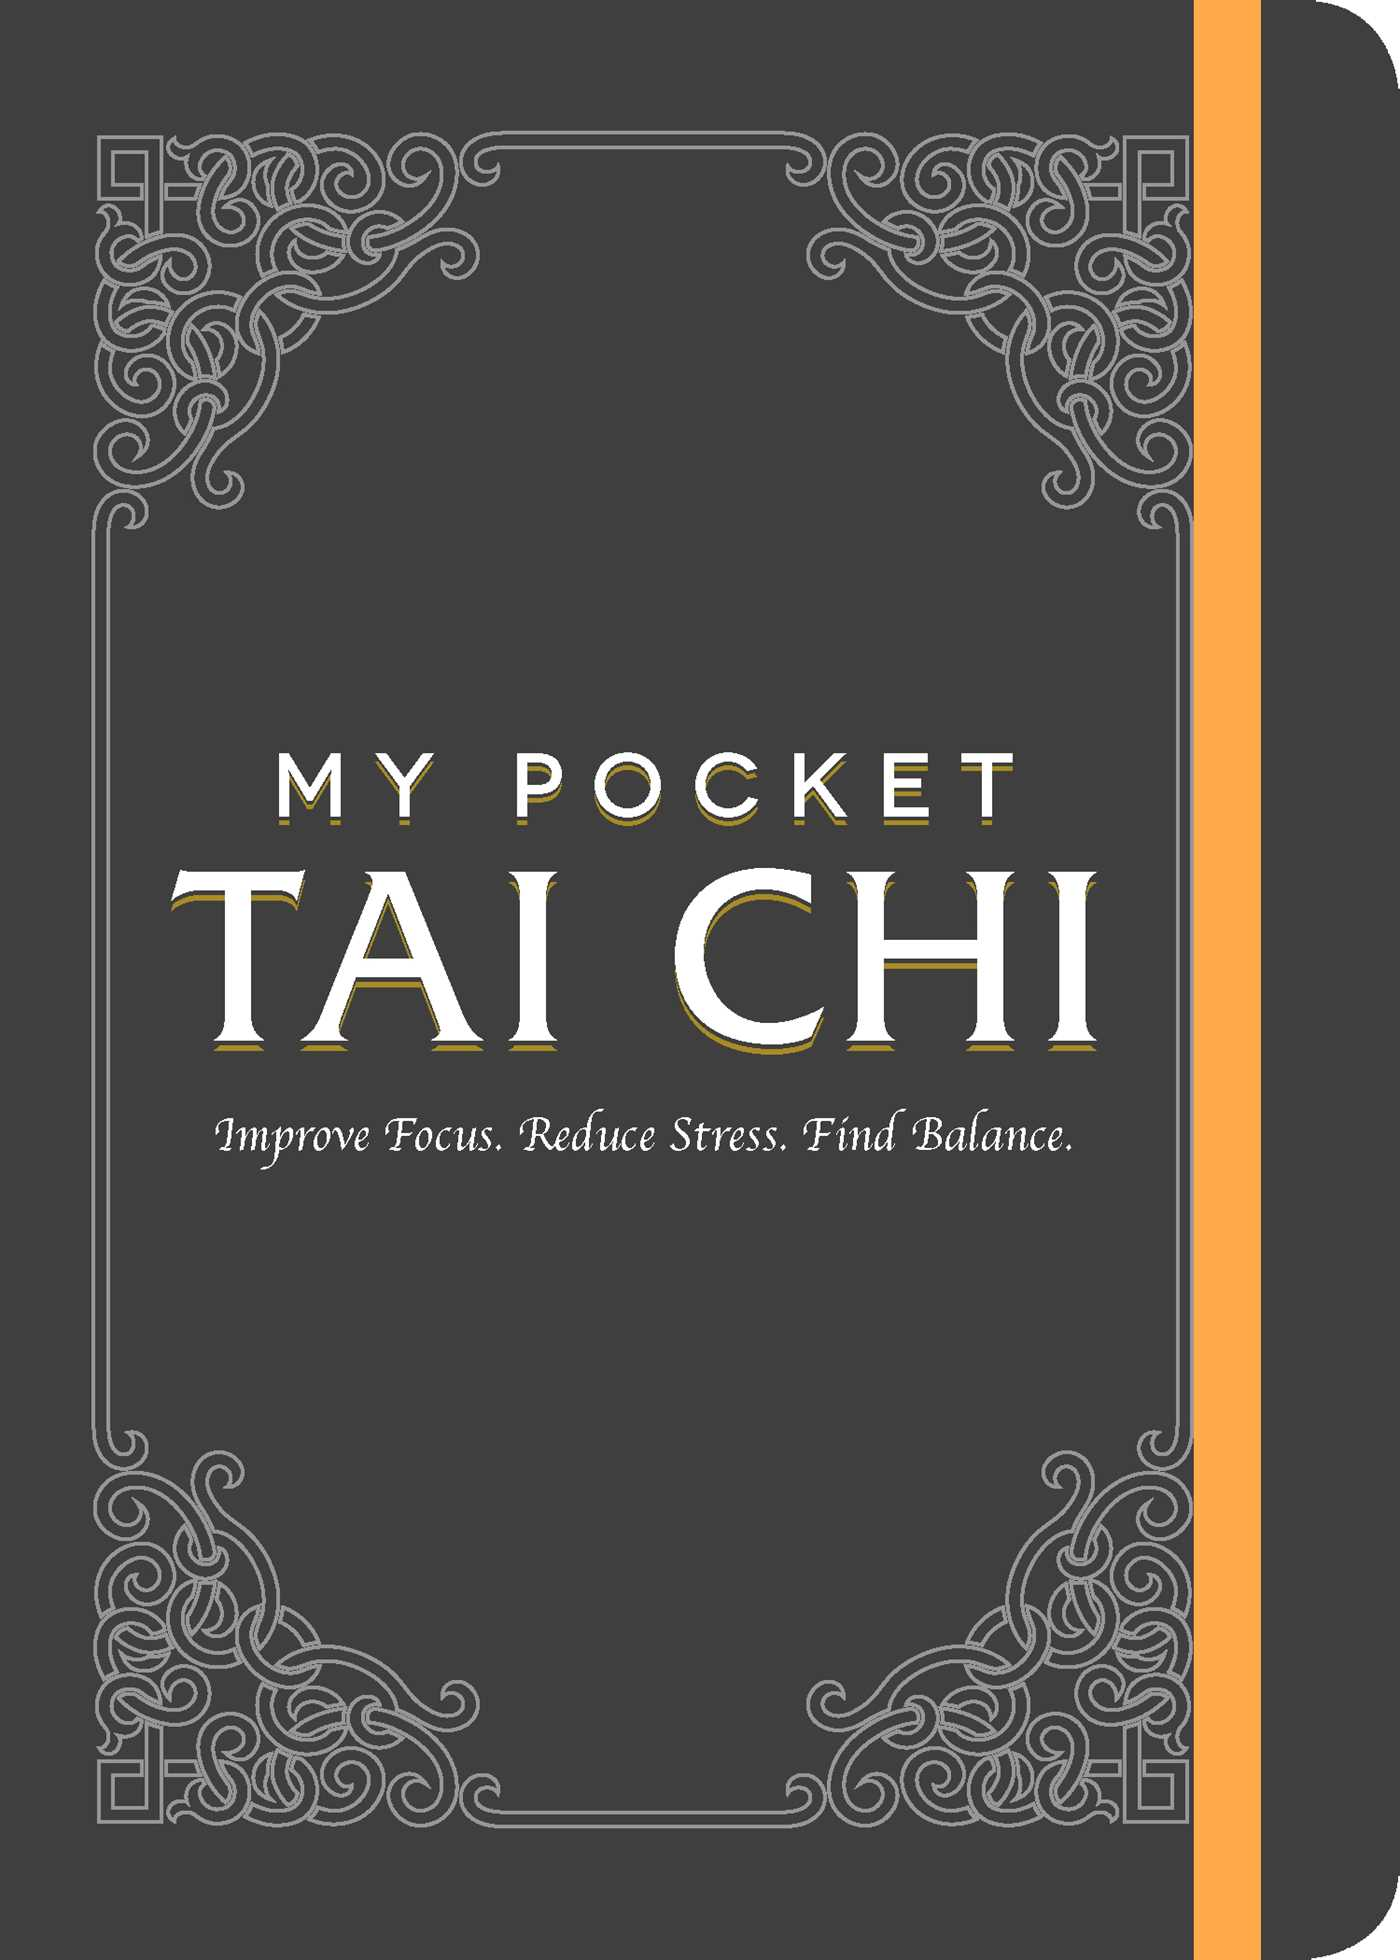 My Pocket Tai Chi | Book by Adams Media | Official Publisher